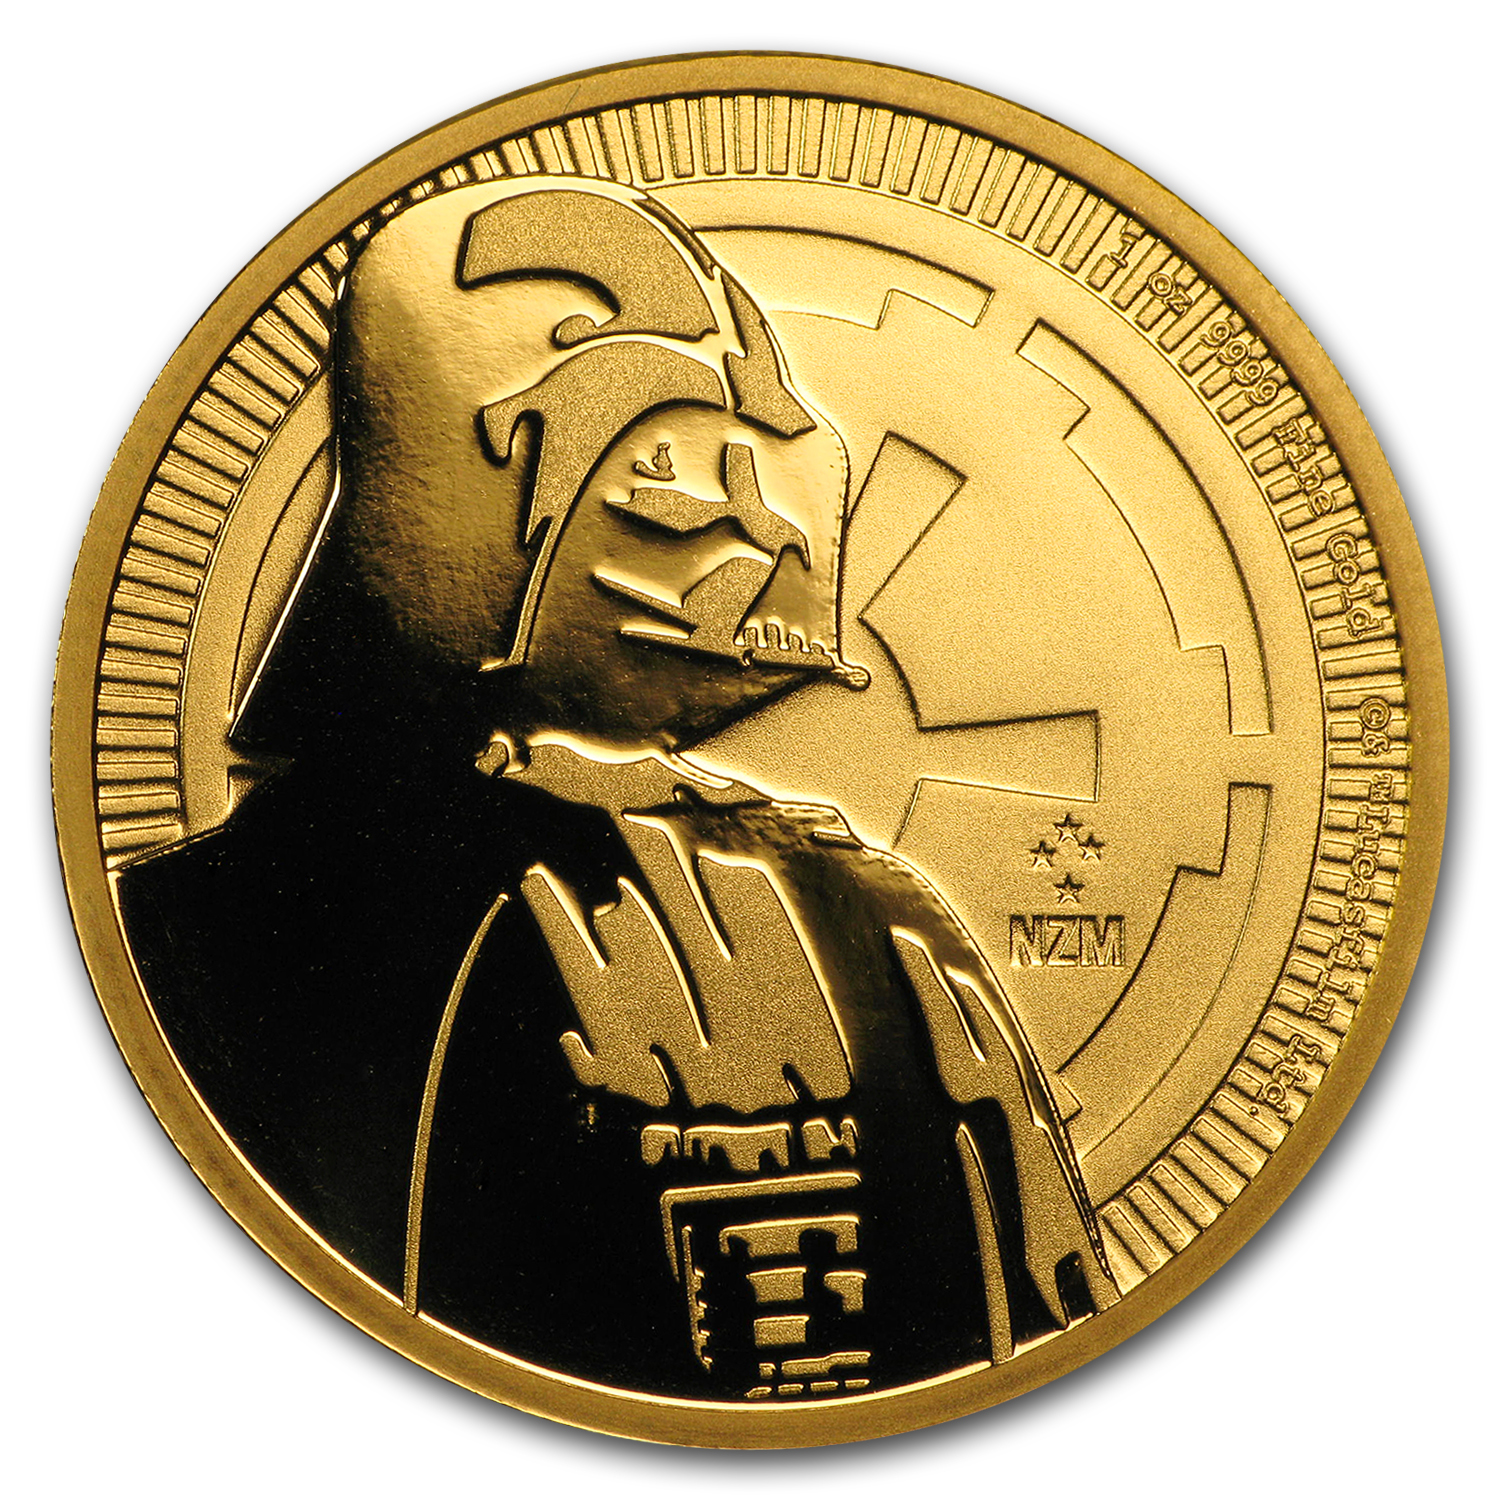 2017 Niue 1 oz Gold $250 Star Wars: Darth Vader BU